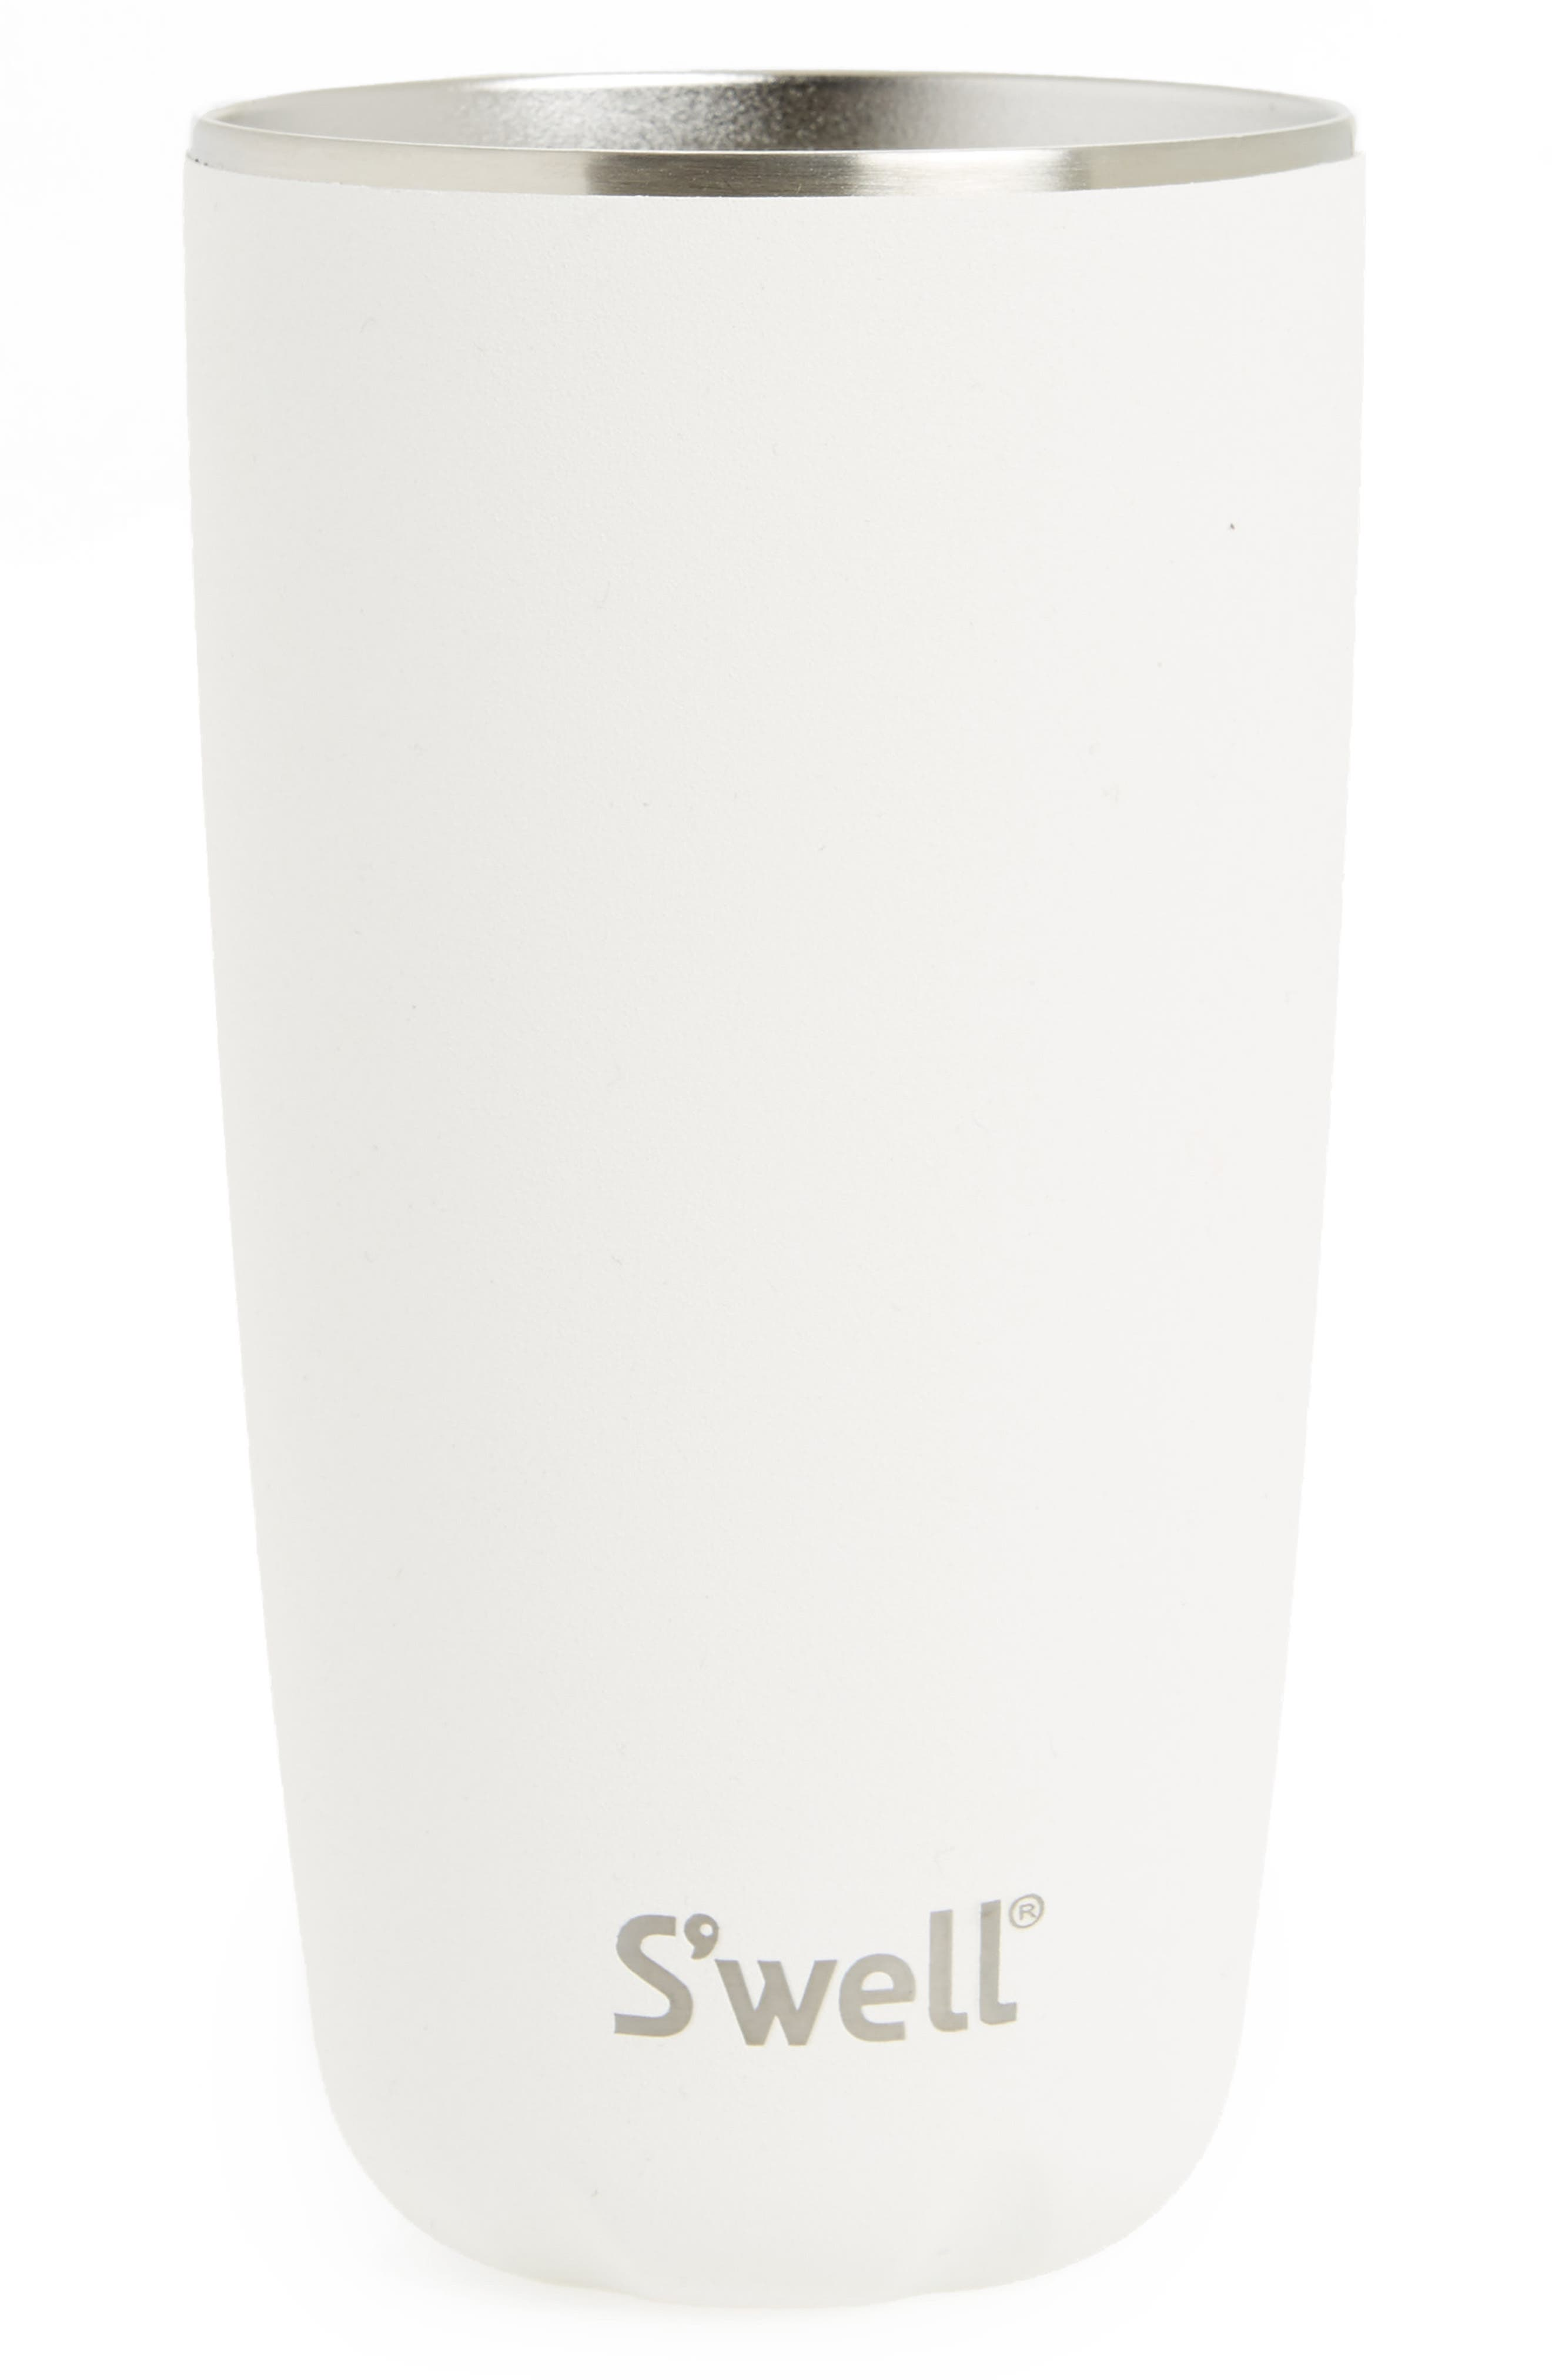 Moonstone 18-Ounce Stainless Steel Insulated Tumbler,                             Main thumbnail 1, color,                             MOONSTONE